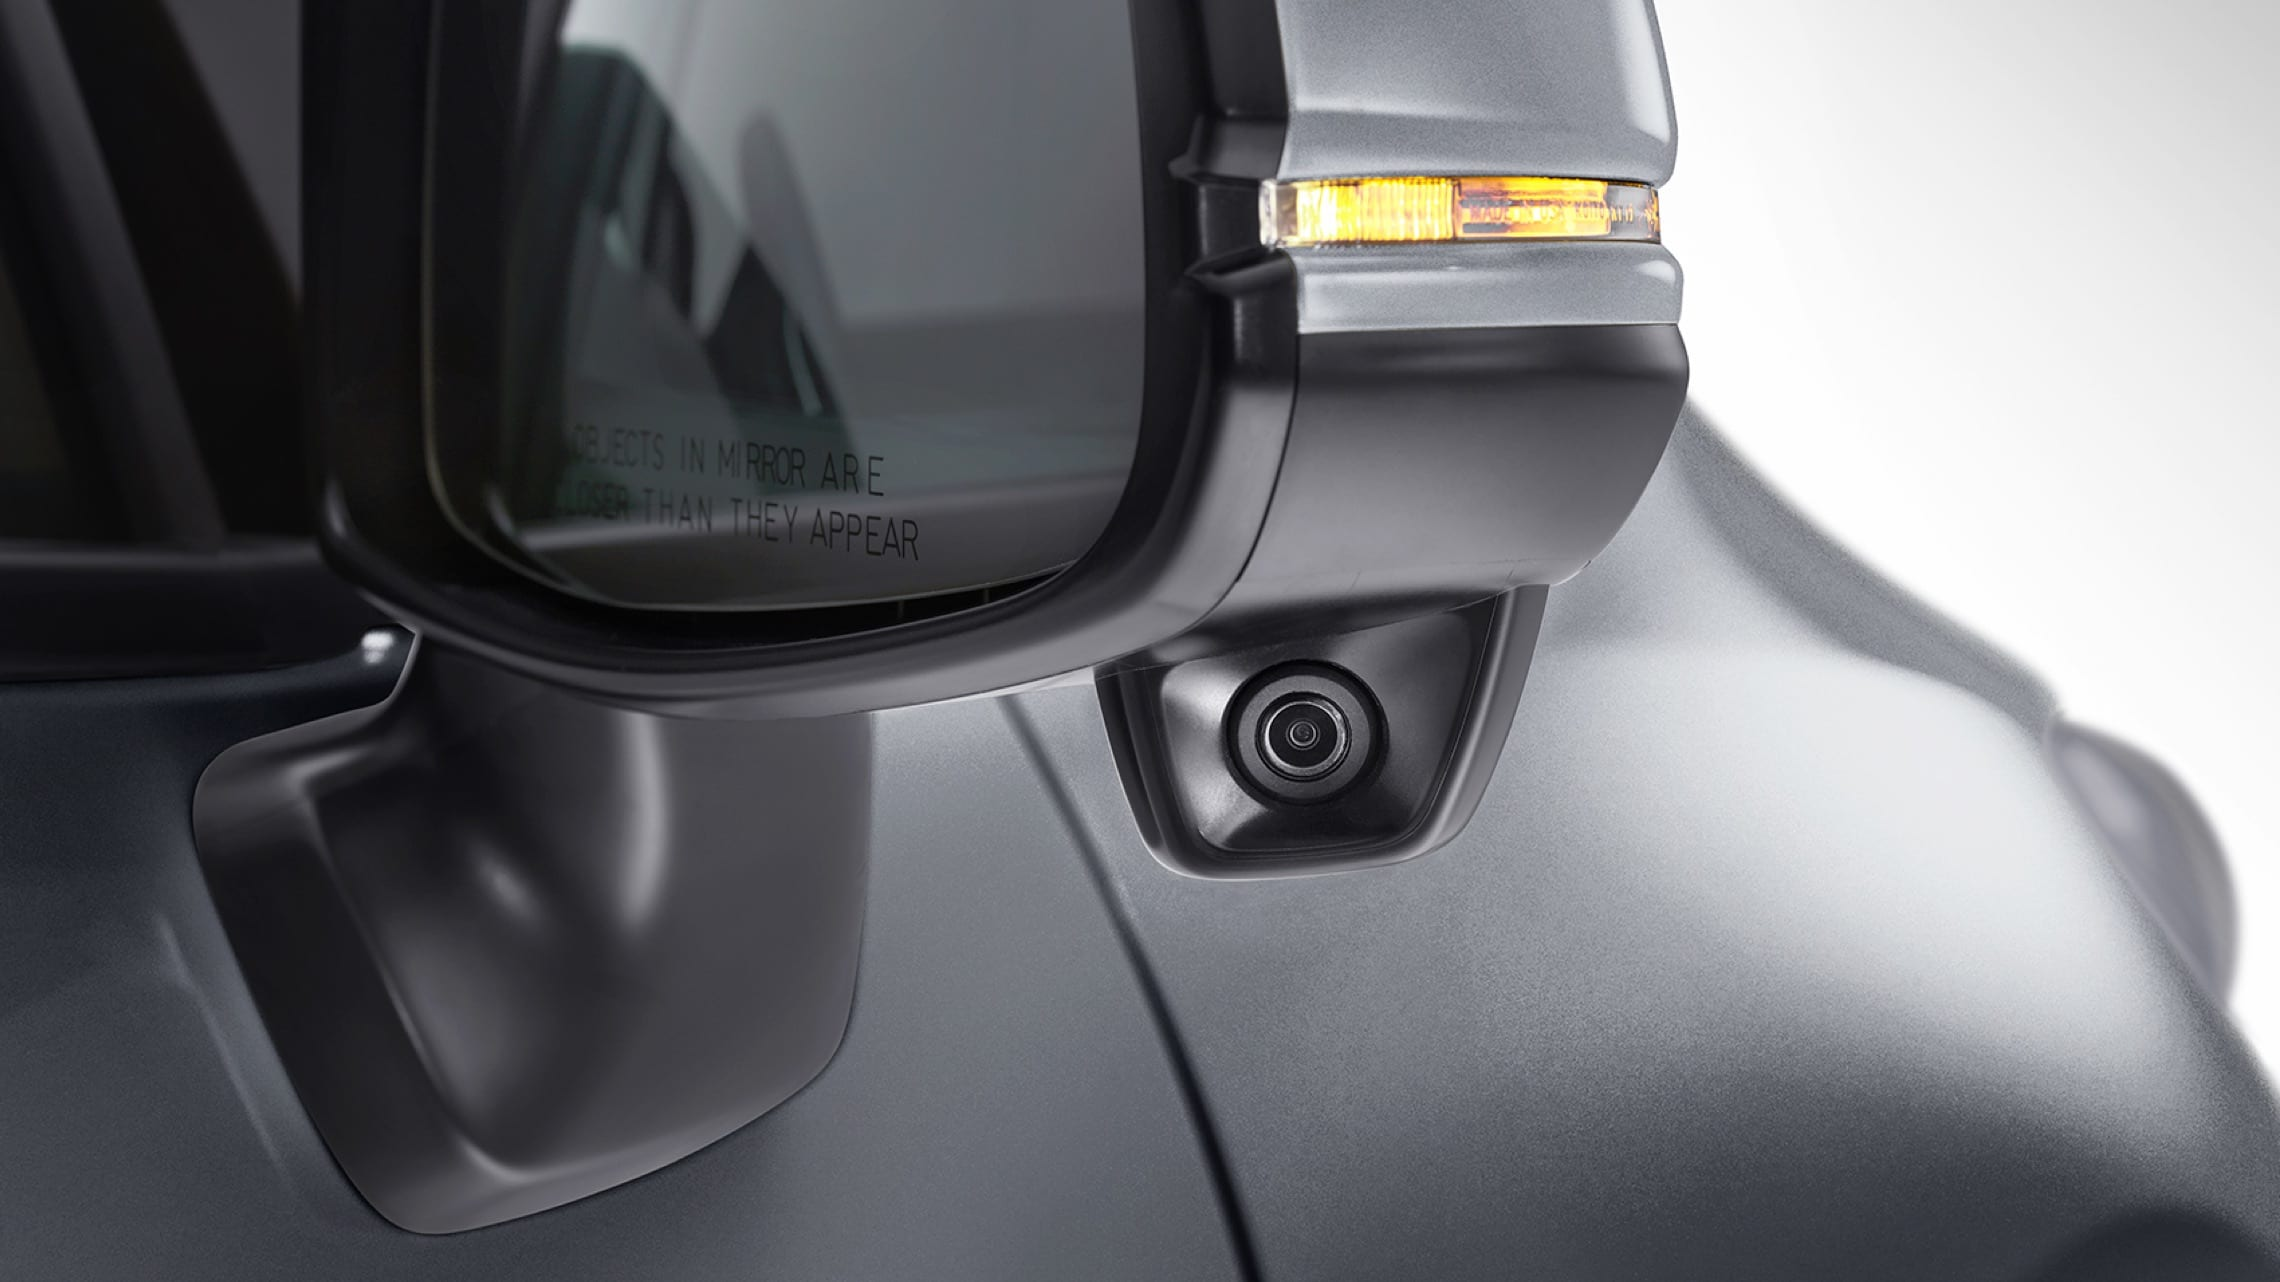 Exterior close up view of Honda LaneWatch™ feature on passenger side mirror on 2020 Honda Fit EX-L.